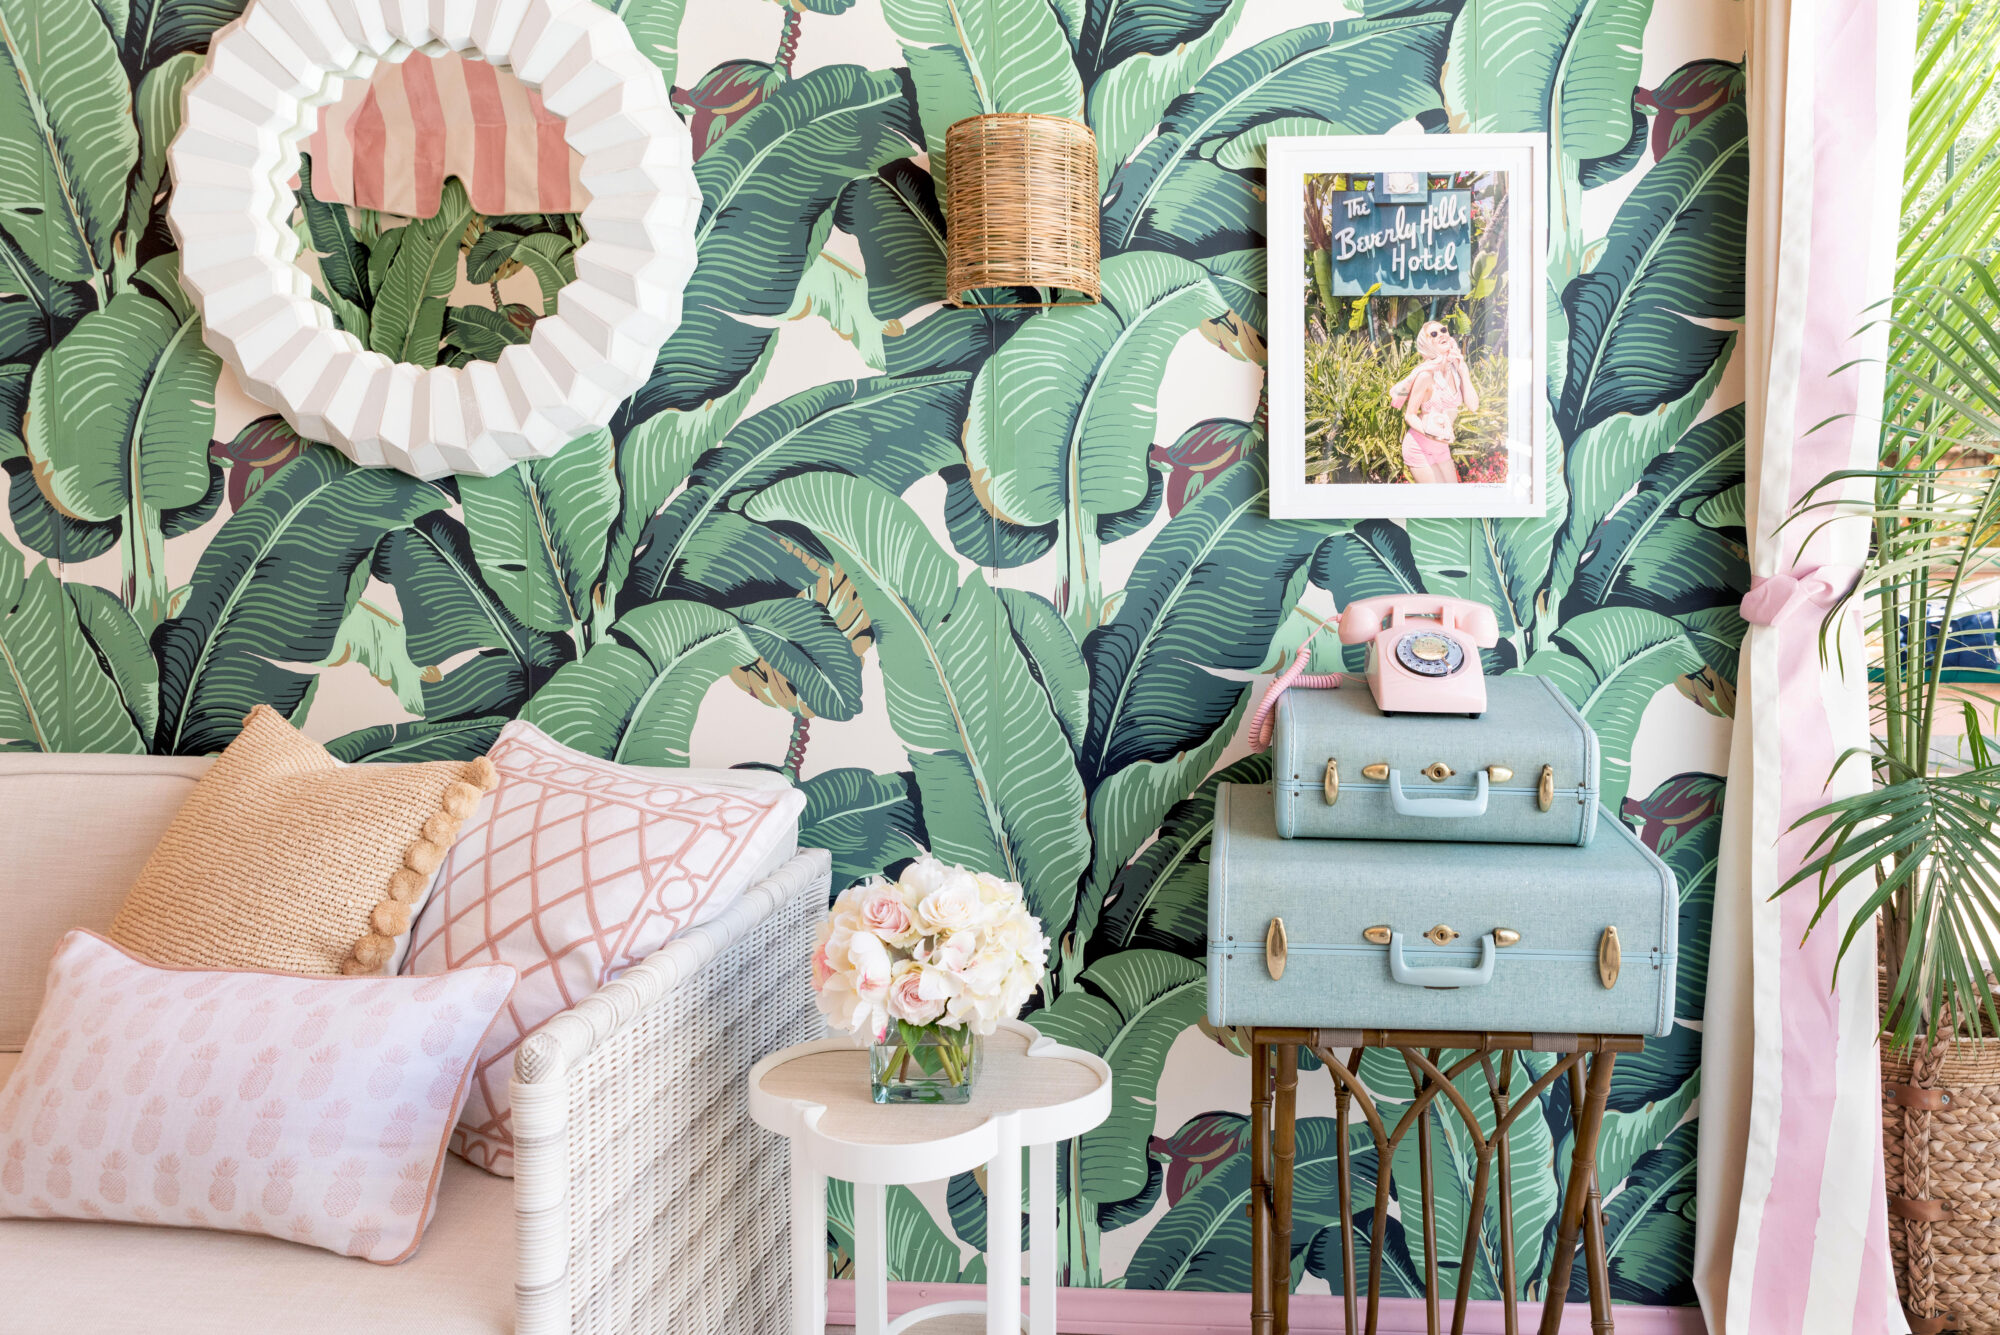 Vintage 1950 decor stands against the banana leaf wallpaper